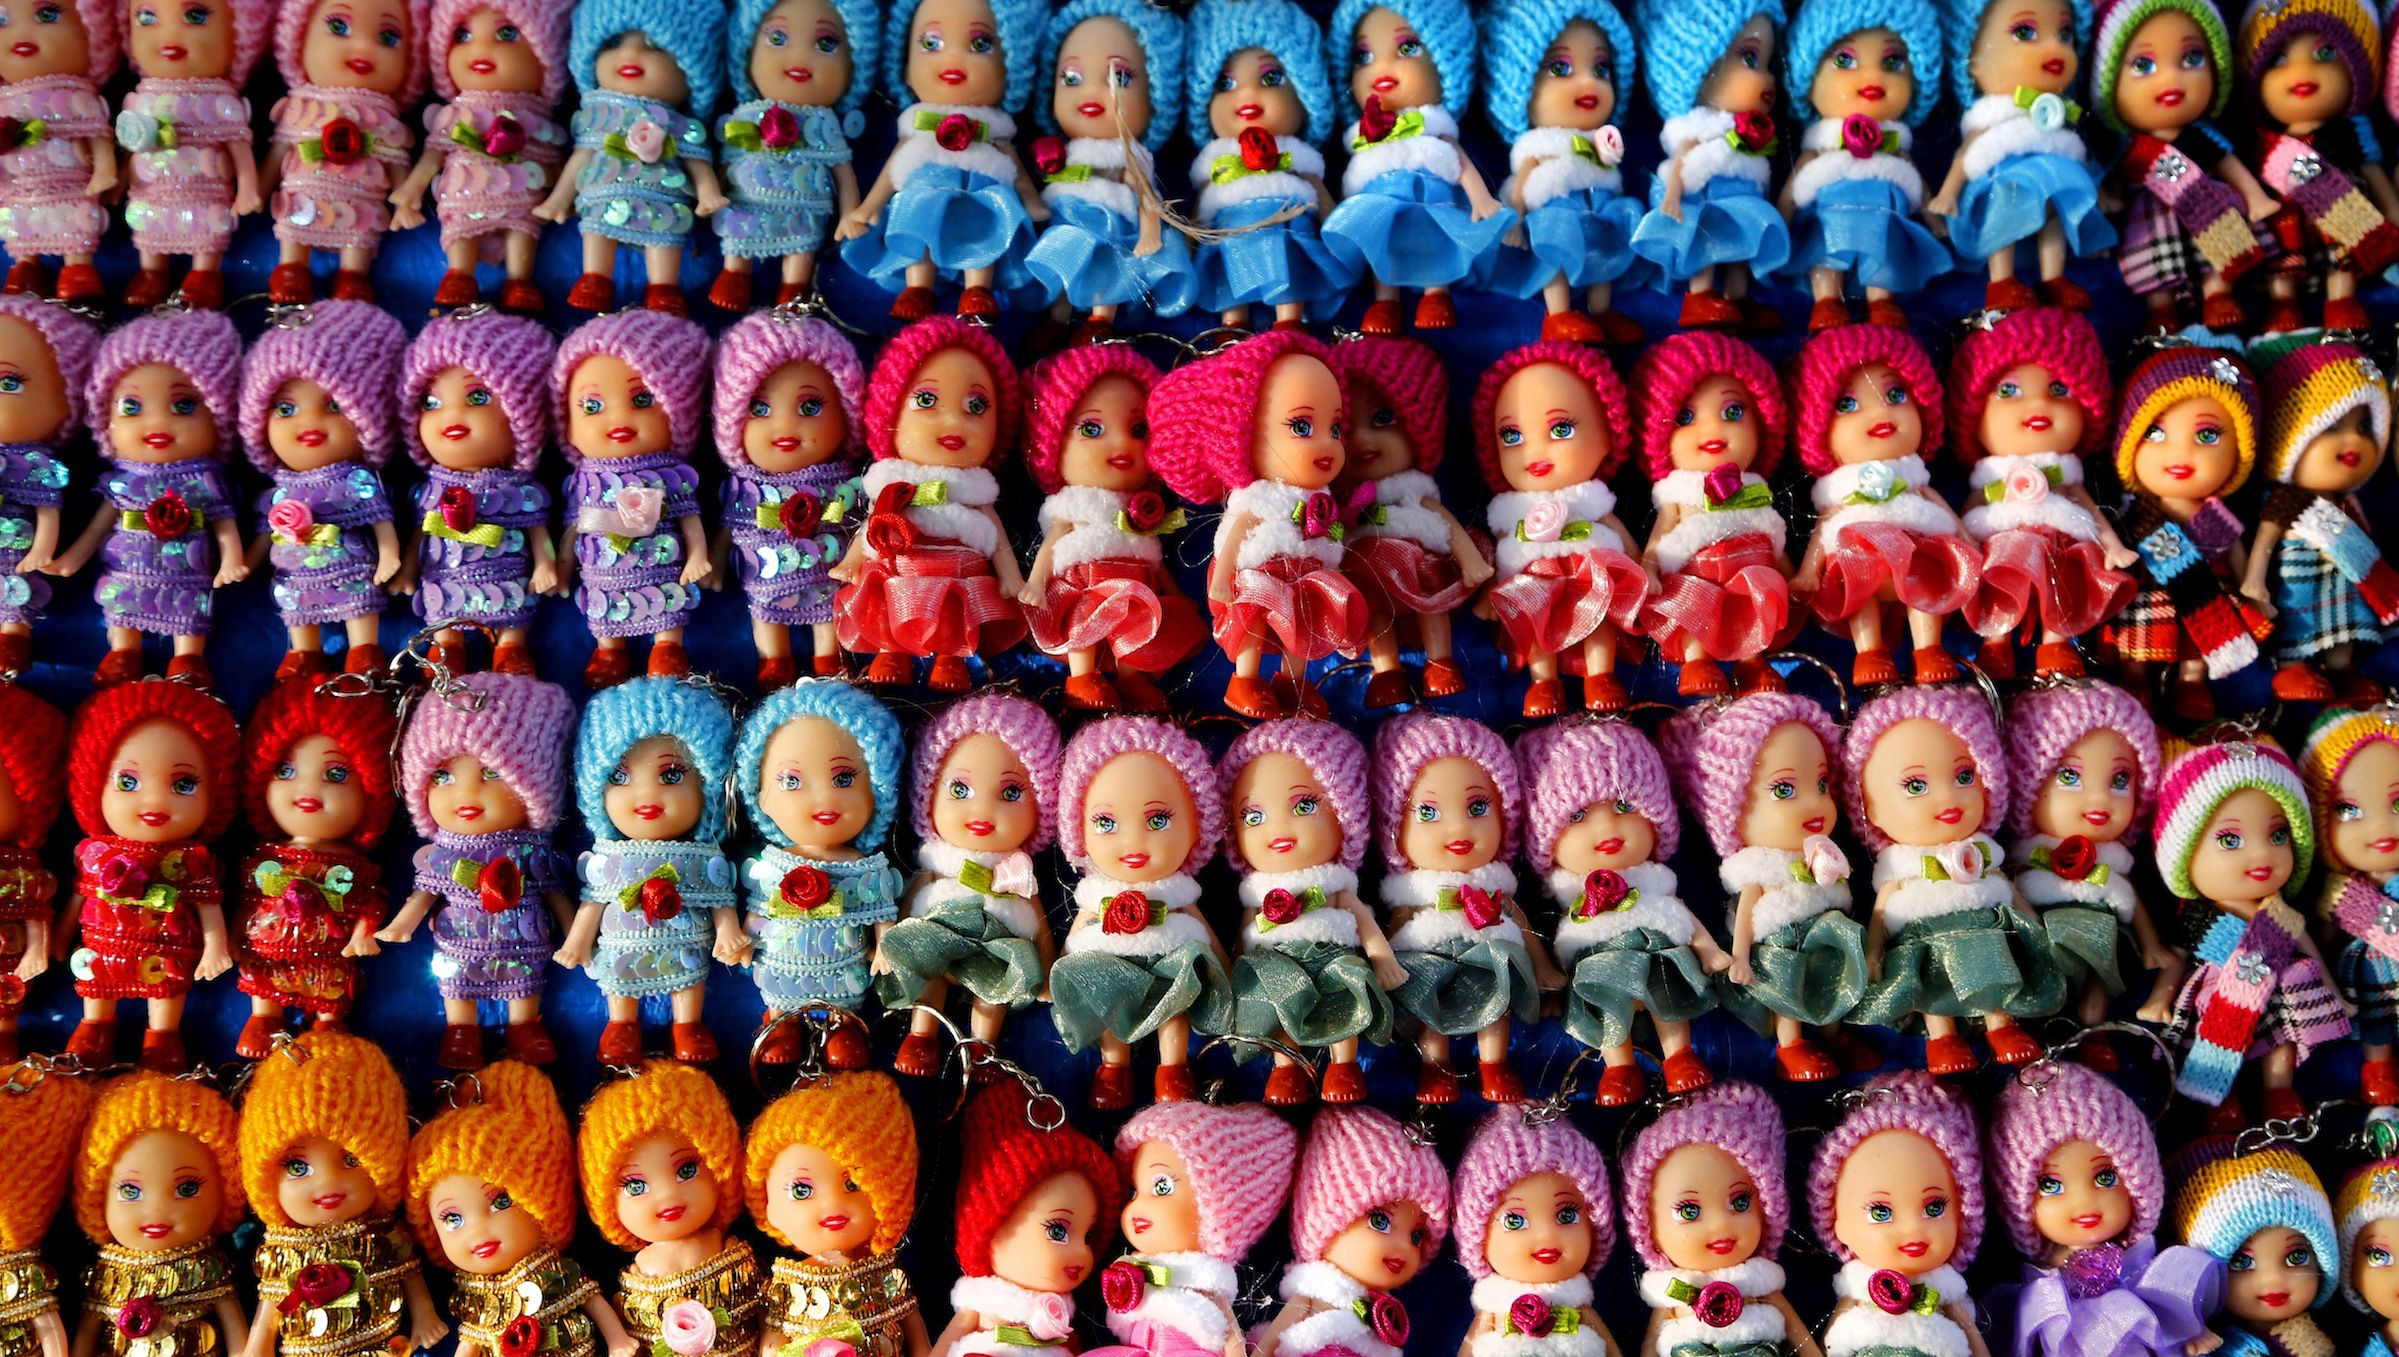 In this Sunday, Dec. 22, 2013, photo, key chains in the shape of dolls are displayed in a shop, in Mumbai, India. Mumbai, which is also known as financial capital of India is the fourth most populous city in the world. (AP Photo/ Rajesh Kumar Singh)